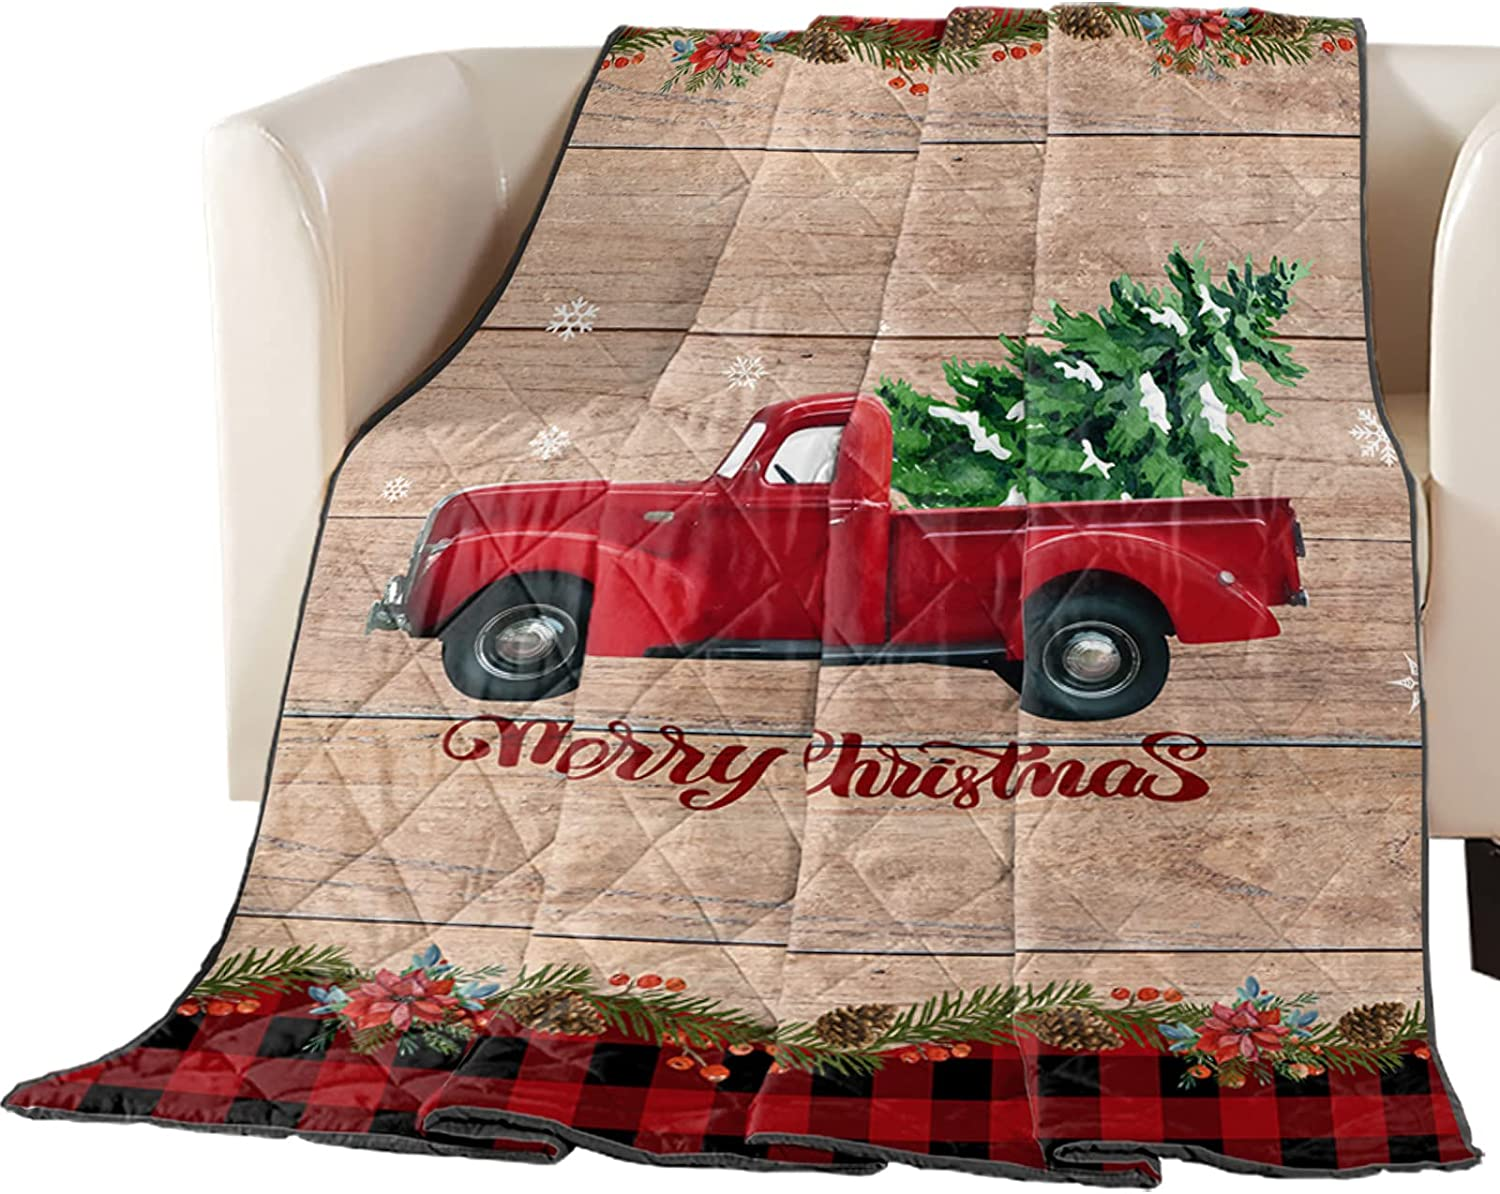 Premium Max 41% OFF Coverlet Diamond Free shipping on posting reviews Stitched Quilted an Farm 90x102in Truck